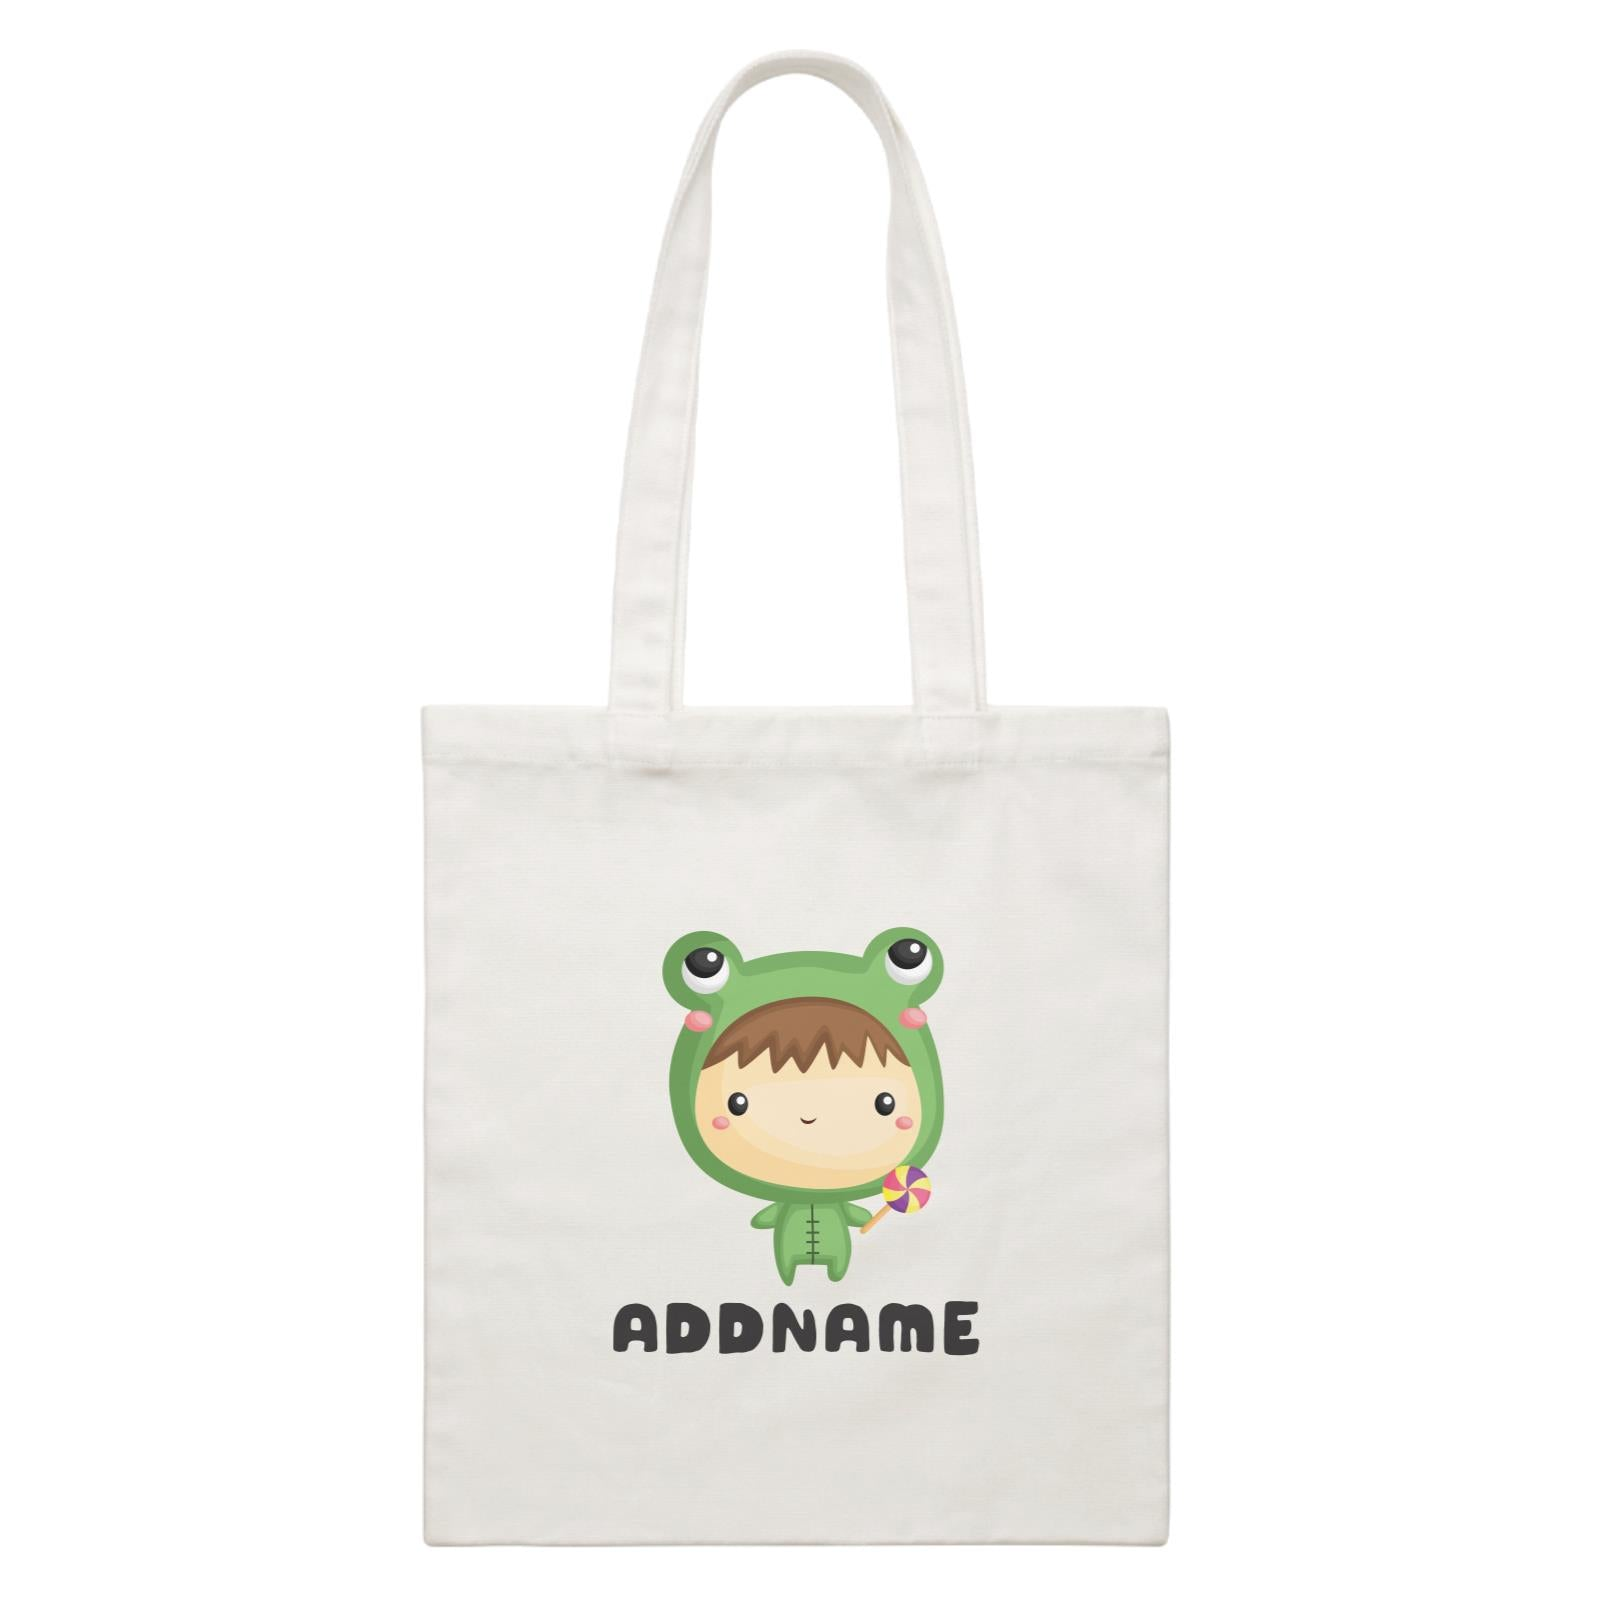 Birthday Frog Baby Boy Wearing Frog Suit Holding Lolipop Addname White Canvas Bag